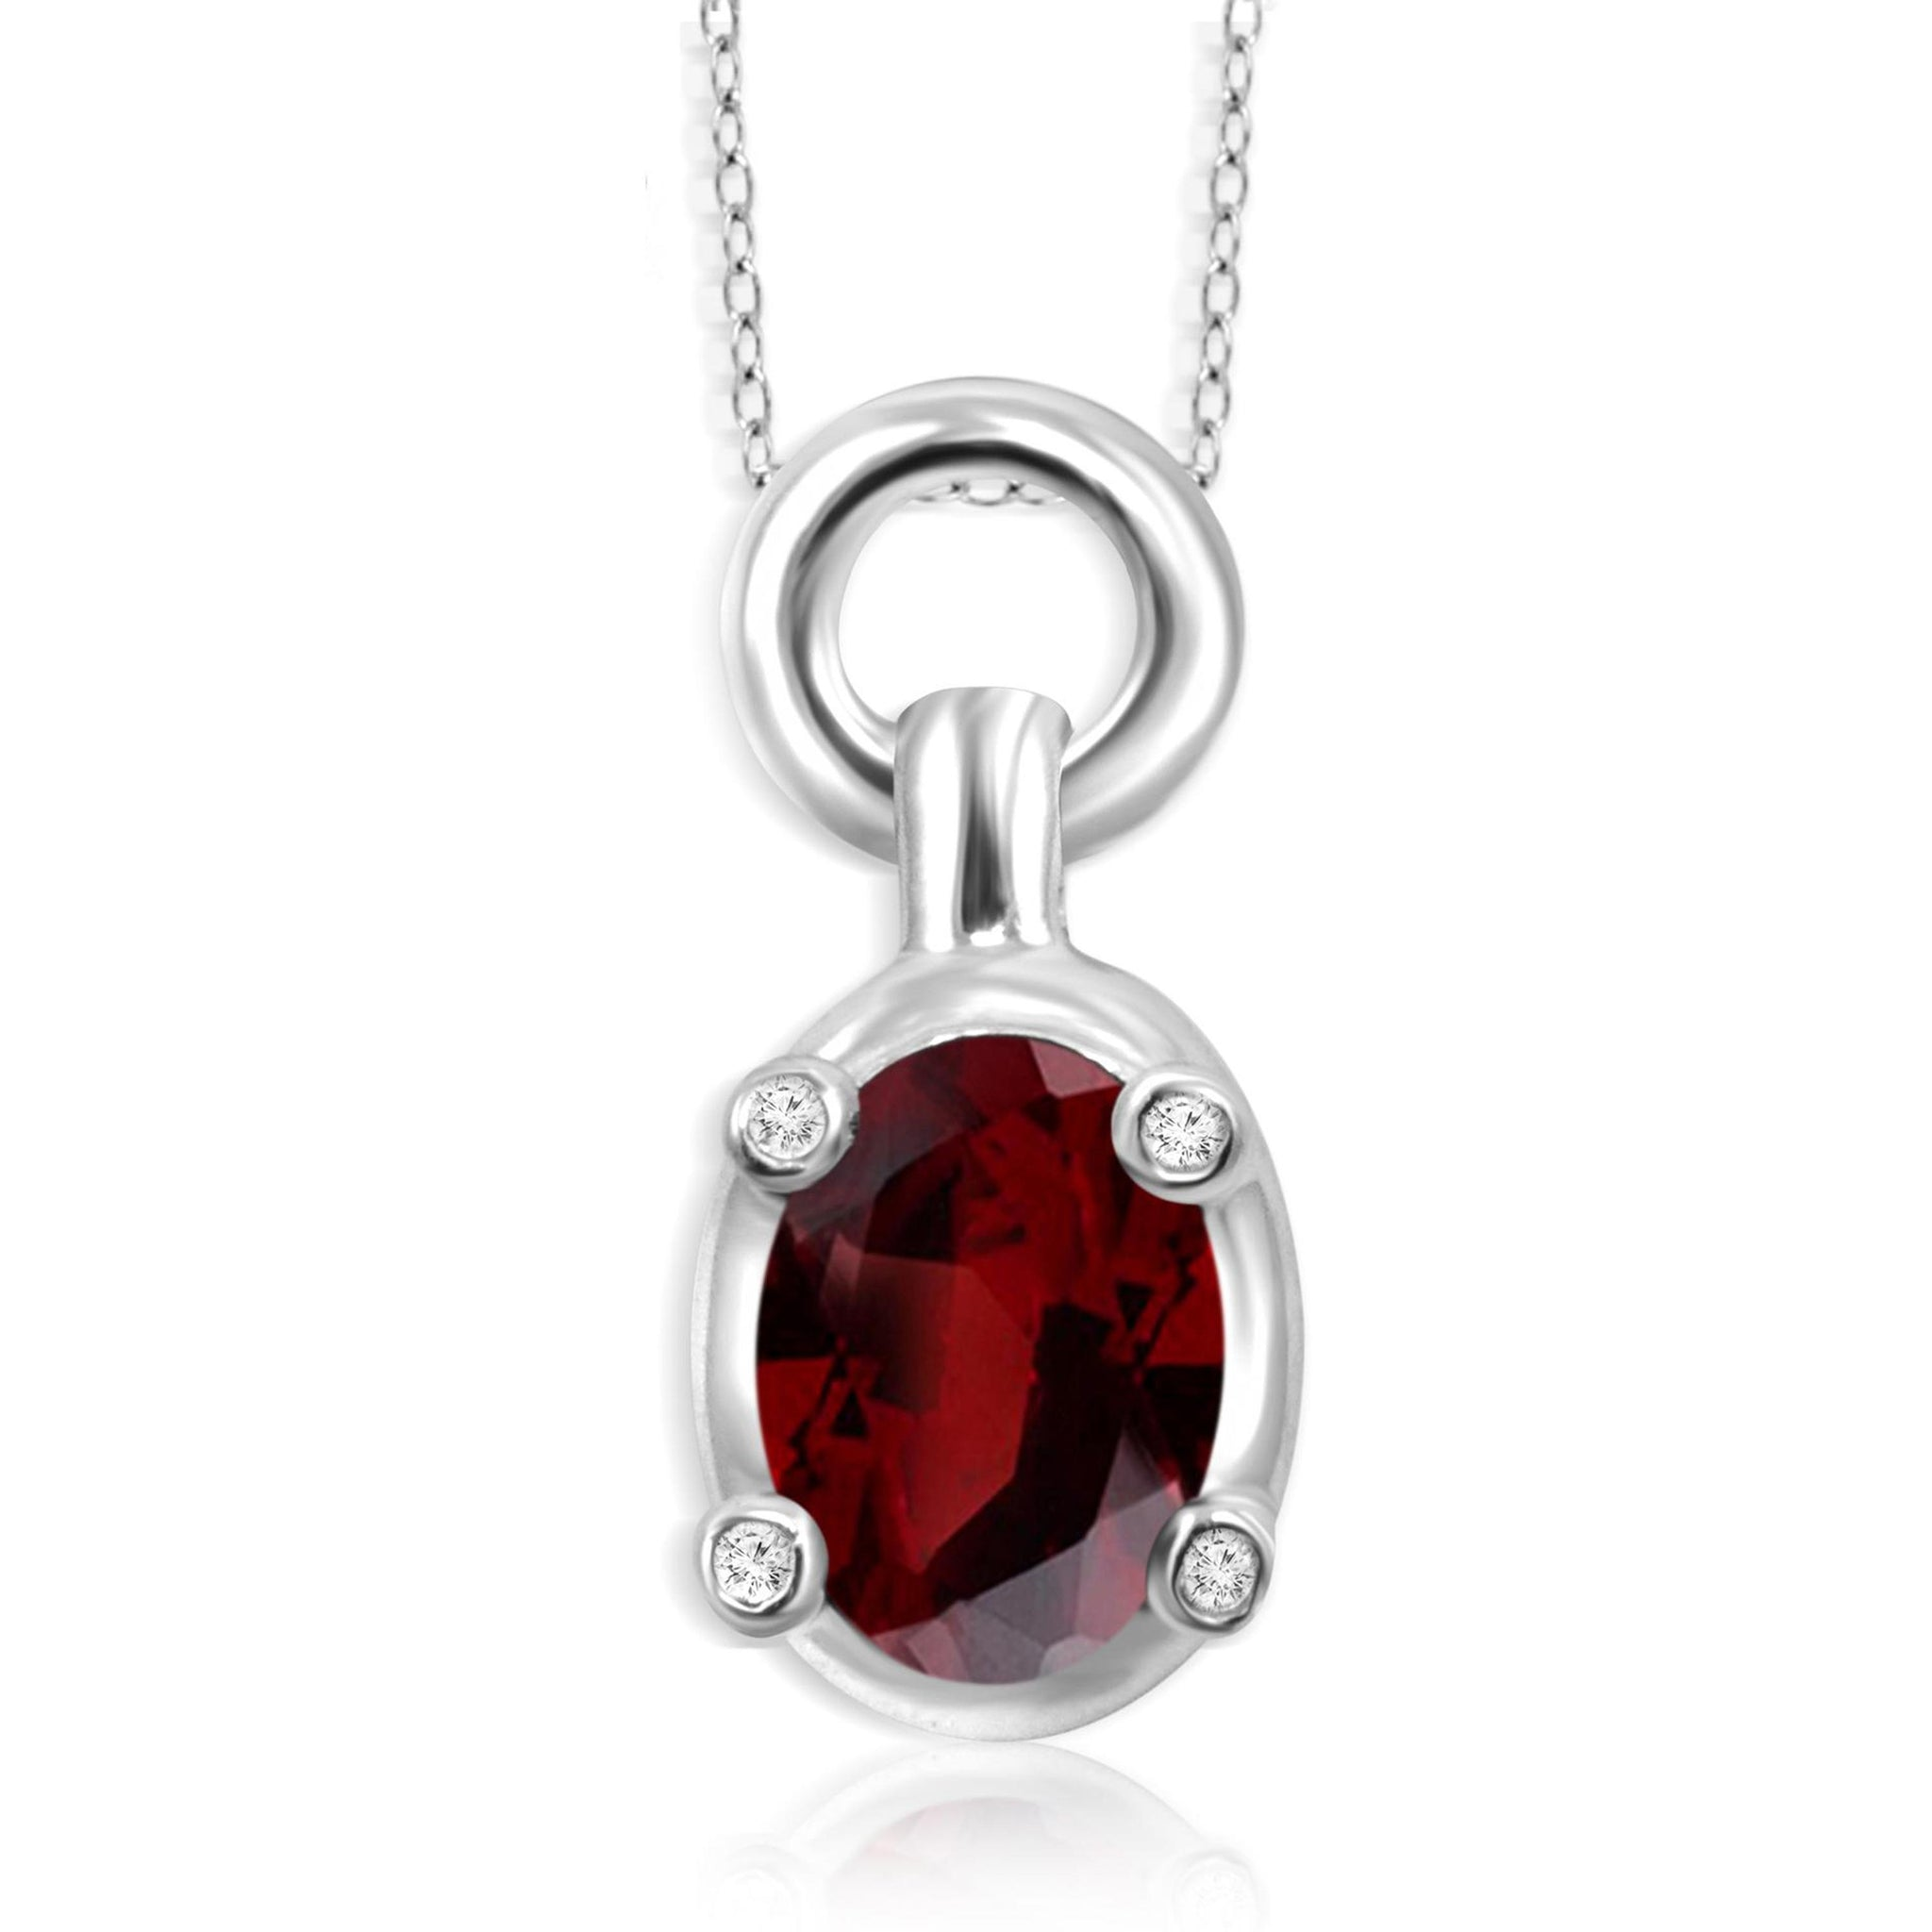 JewelonFire 1.00 Carat T.G.W. Garnet And White Diamond Accent Sterling Silver Pendant - Assorted Colors